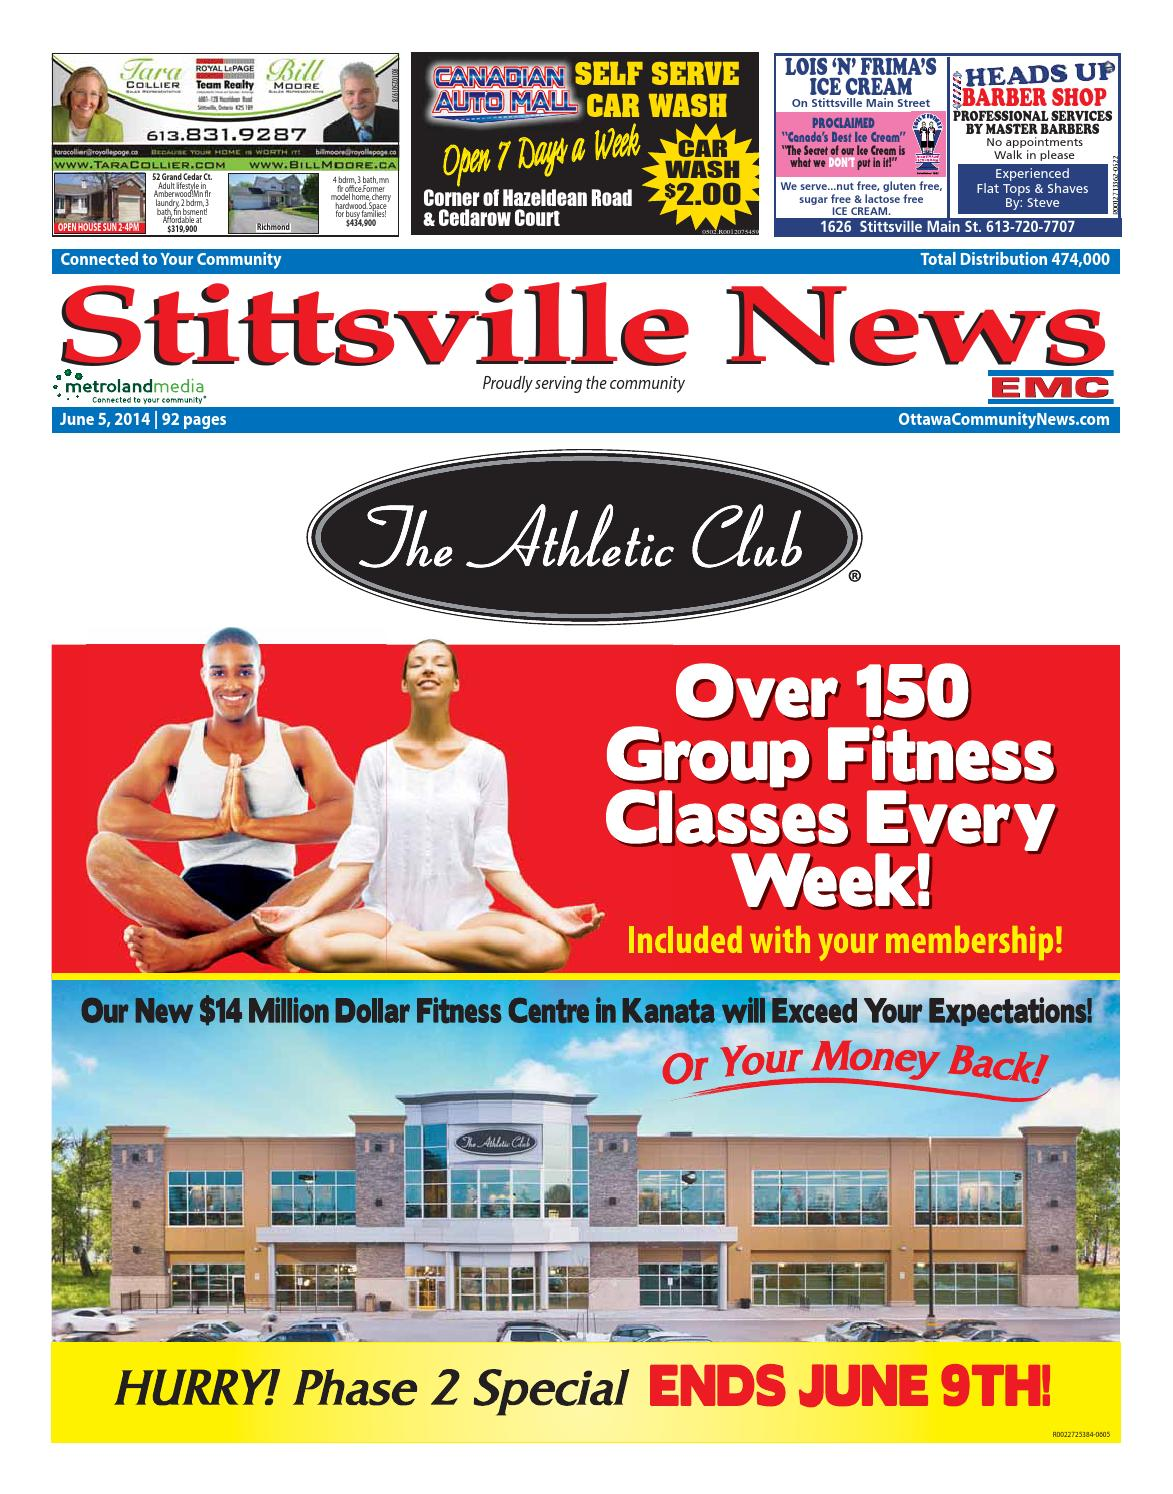 e9b6f5a83e3 Stittsville060514 by Metroland East - Stittsville News - issuu